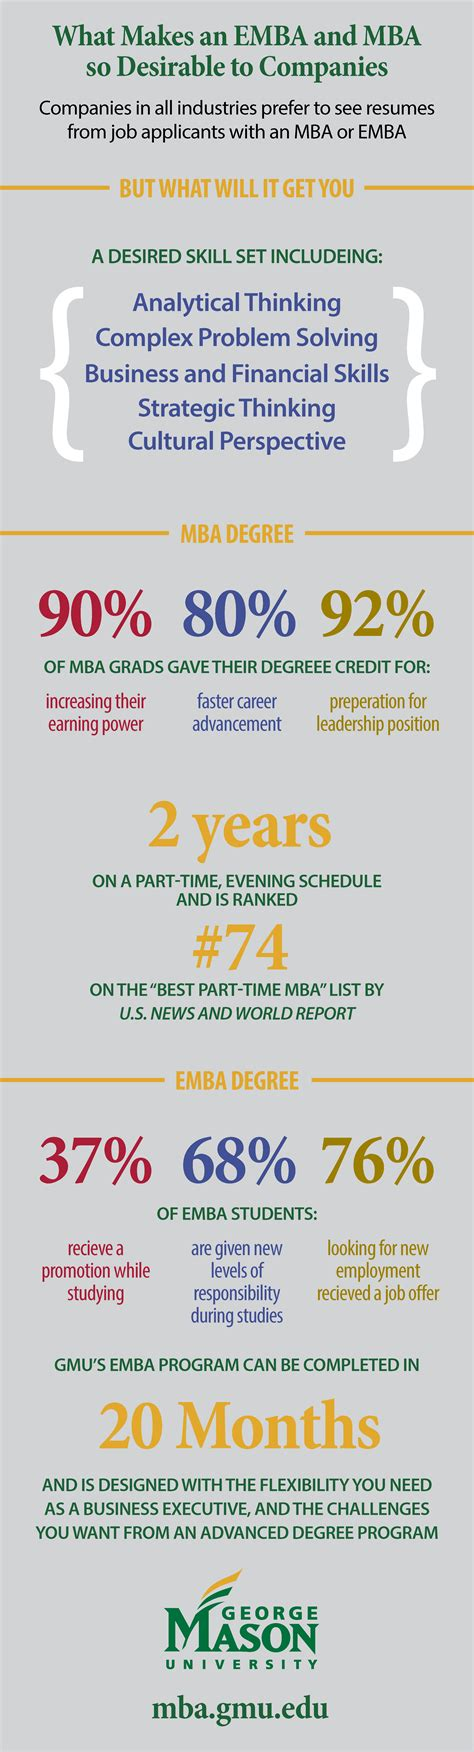 National Security Executive Mba by What Makes An Emba Mba So Desirable To Companies